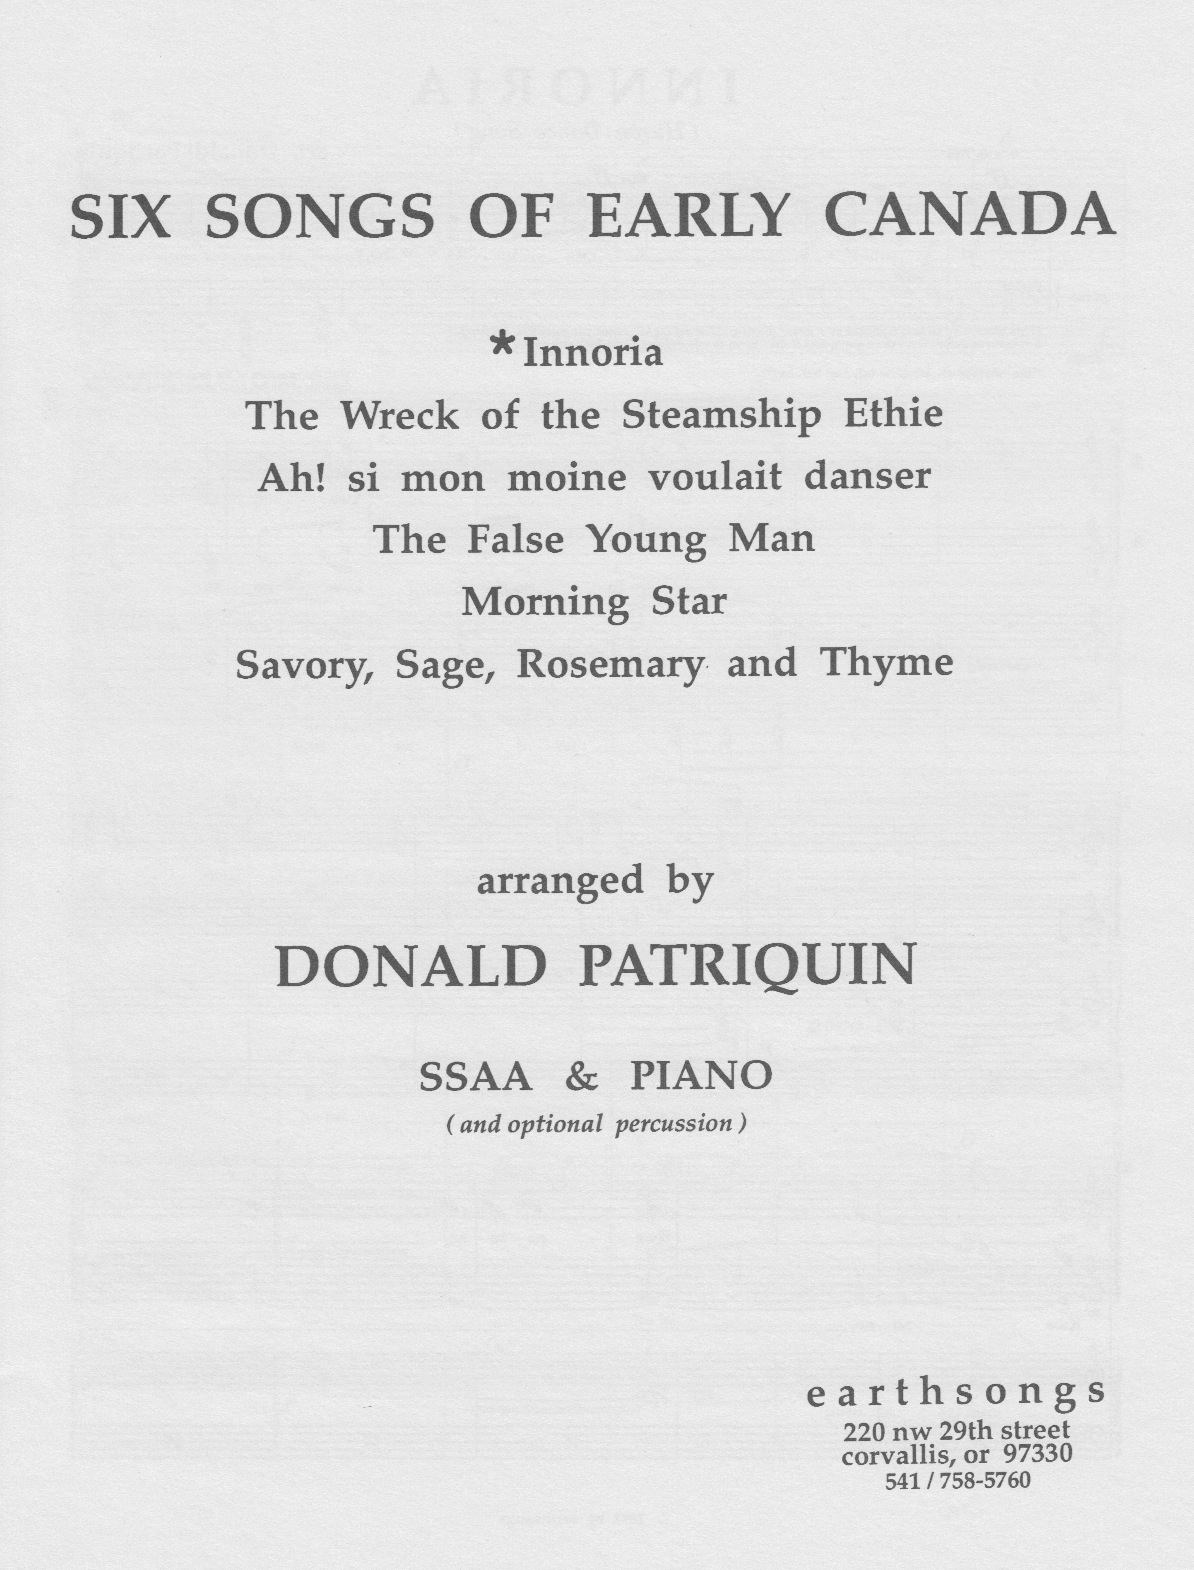 songs of early canada (ssa)